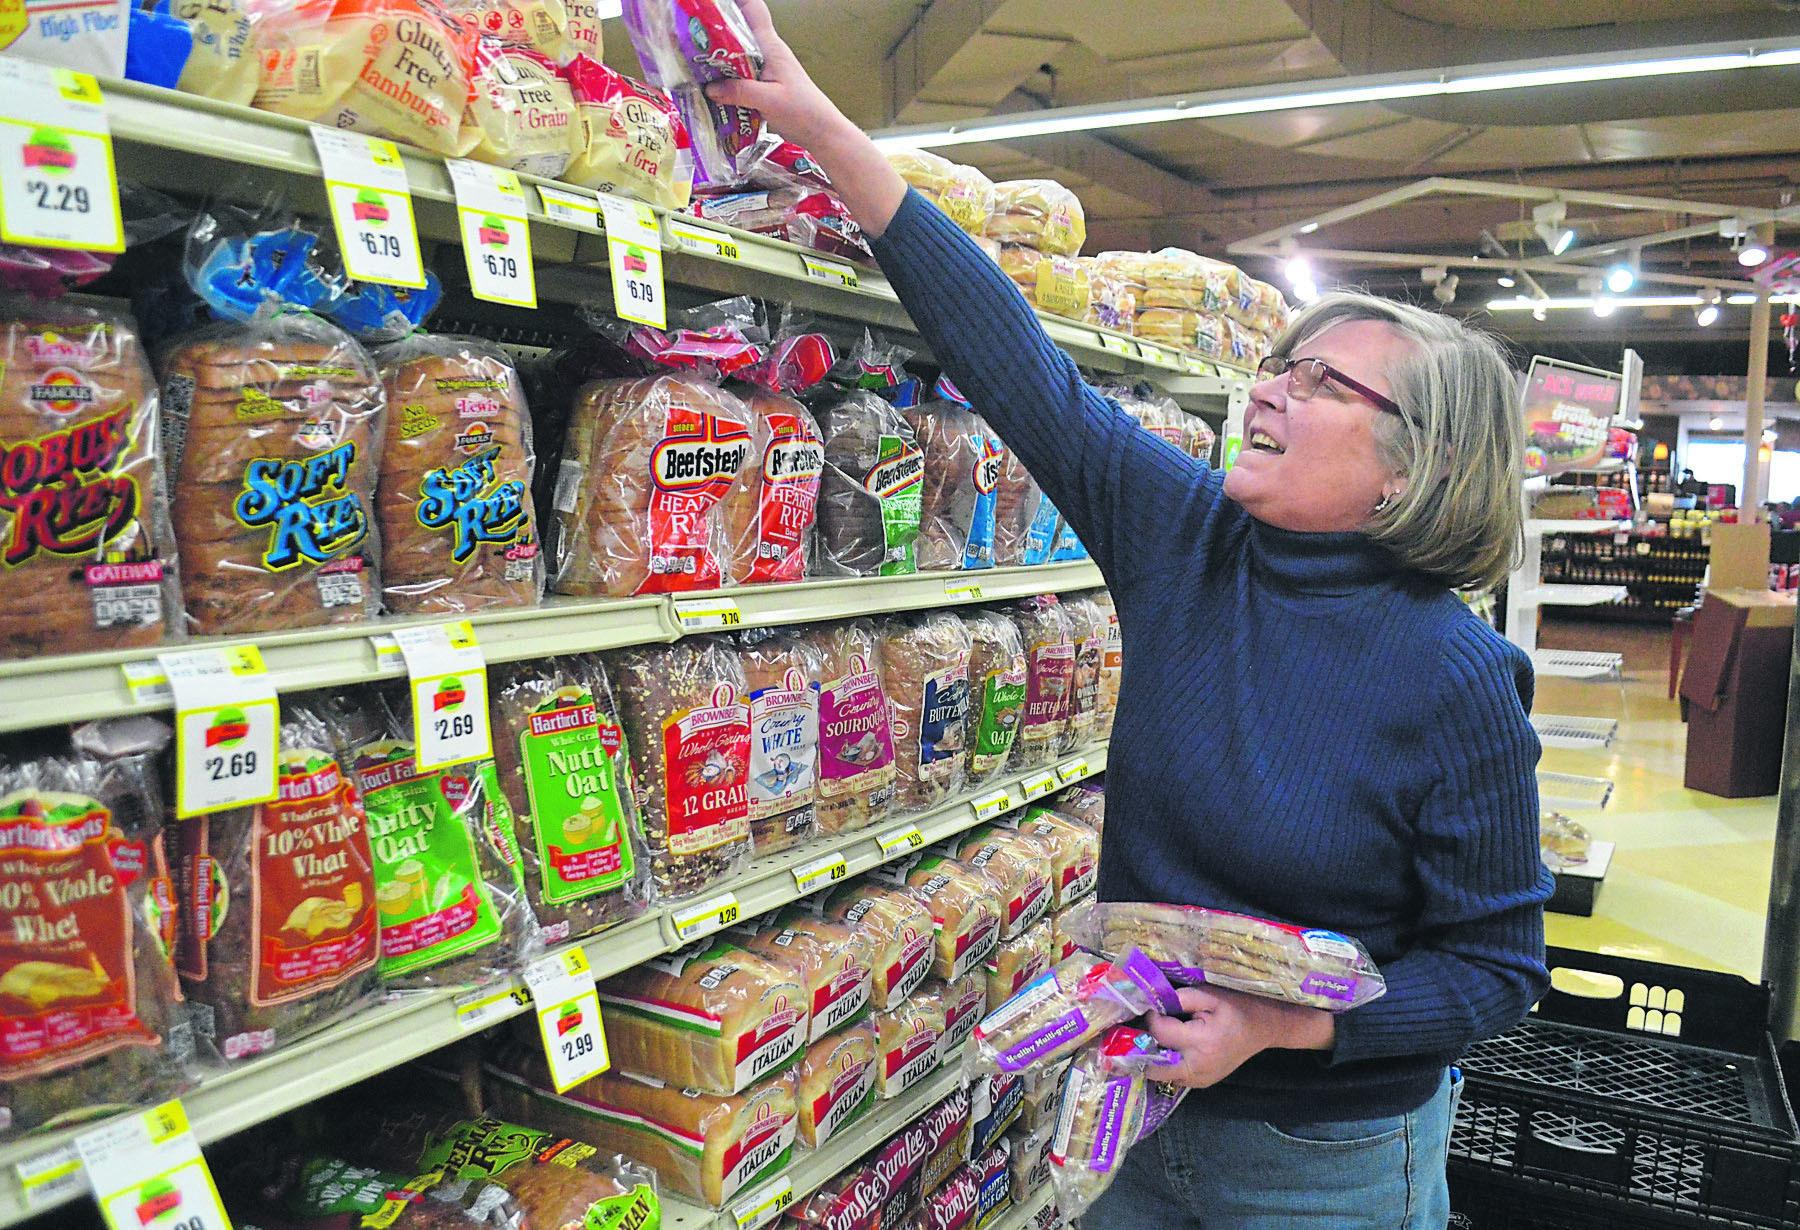 Helen Sweeney, an independent distributor for Brownberry Premium Breads, stocks the shelves at Al's Supermarket ahead of another snowstorm, Thursday, Feb. 8, 2018, in La Porte, Ind.  (Jon Gard/The News-Dispatch via AP)